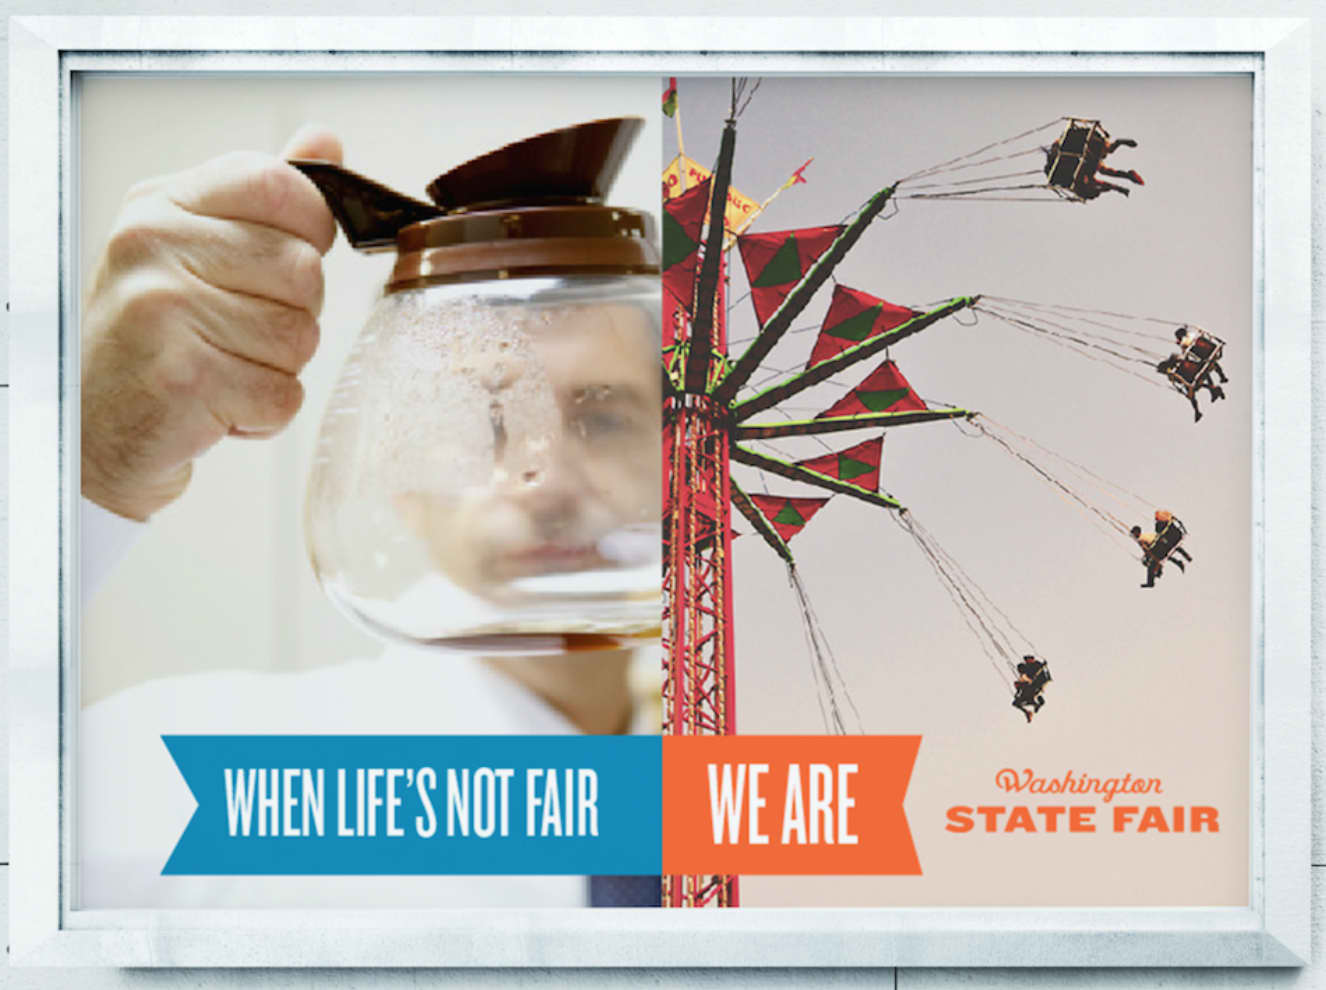 Washington State Fair Campaign